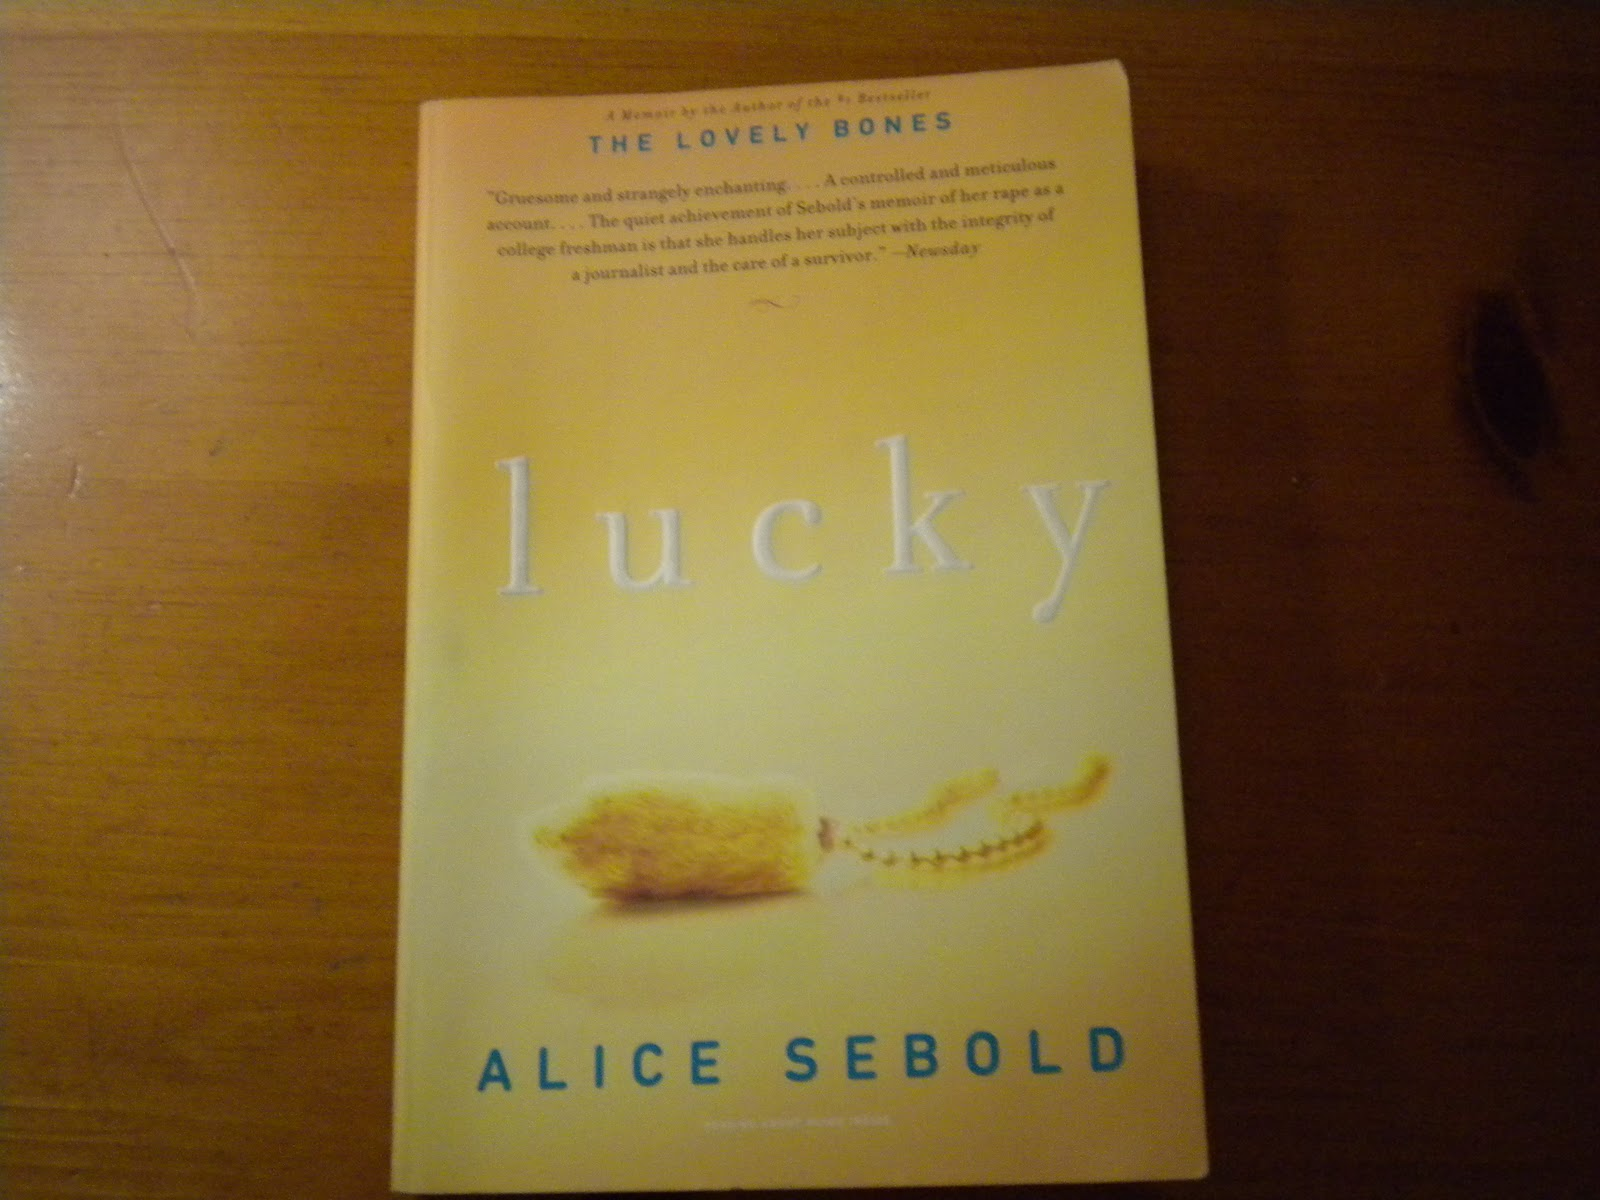 lucky by alice sebold Alice sebold a woman steps over the line into the unthinkable in this brilliant, powerful, and unforgettable new novel by the author of the lovely bones and lucky for years helen knightly has given her life to others: to her haunted mother, to her enigmatic father, to her husband and now grown children.